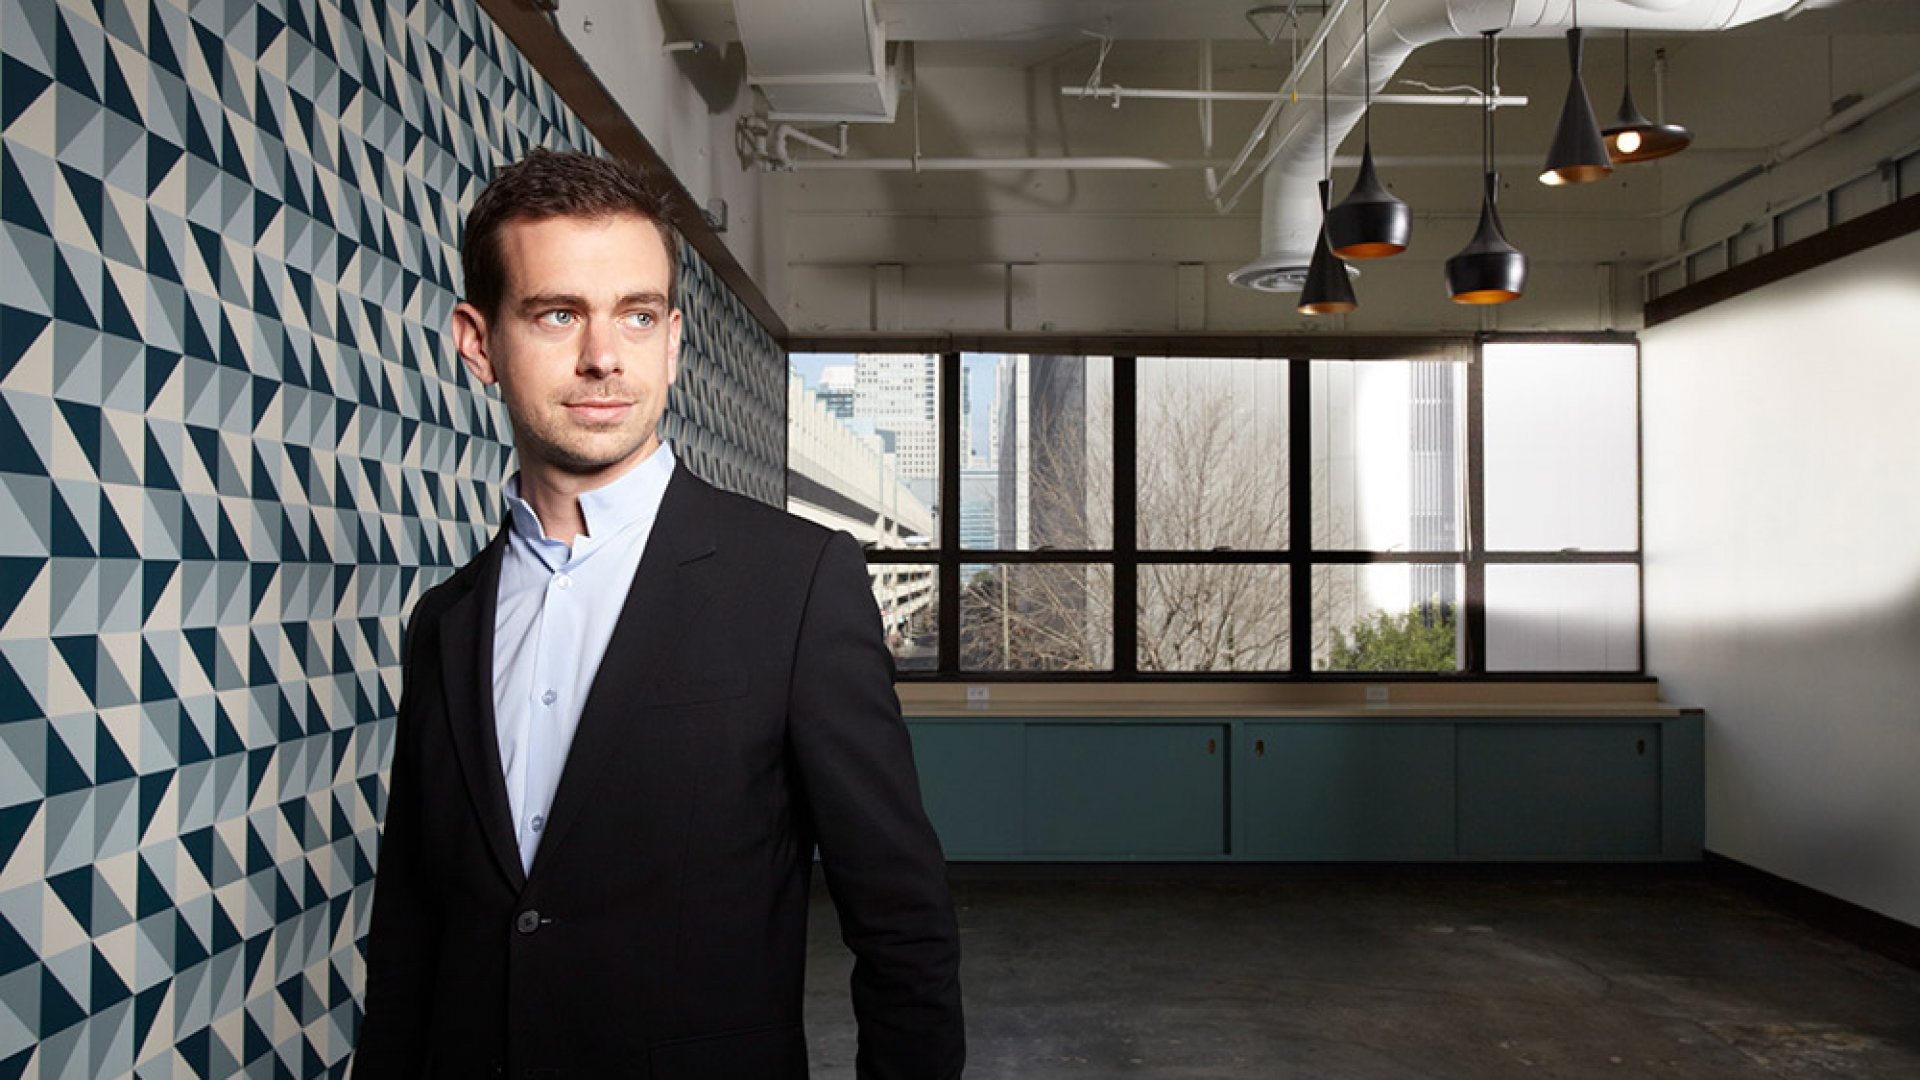 As Dual CEO, Twitter's Jack Dorsey Would Be in Good Company